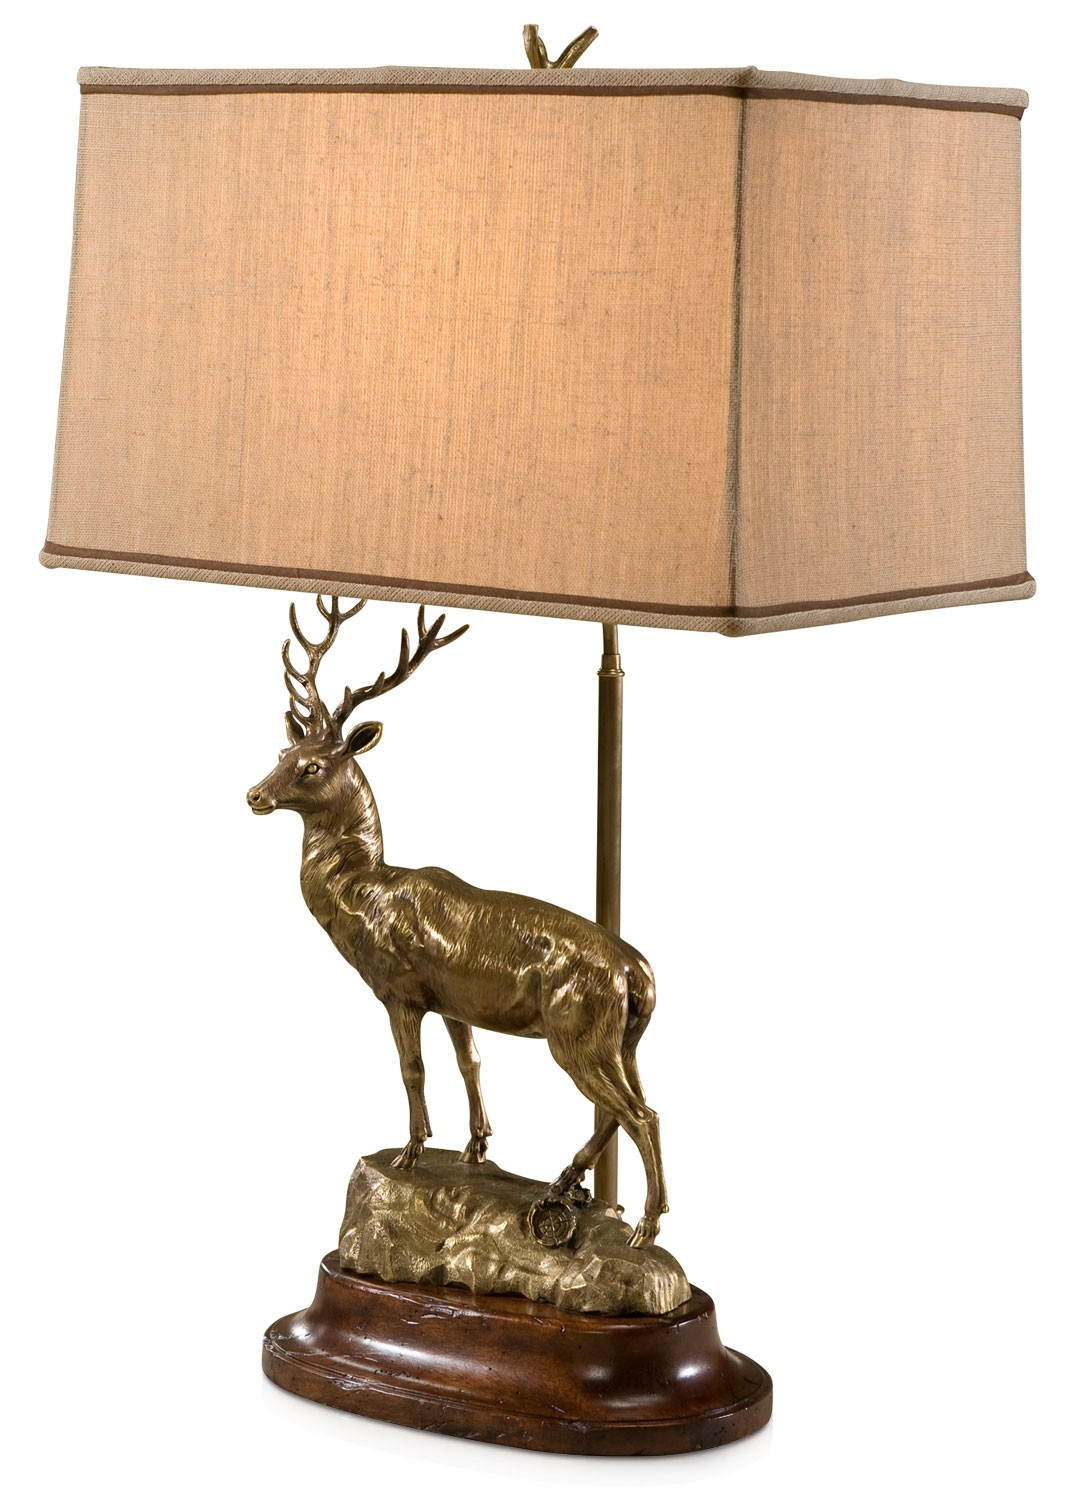 Brass Model Of A Stag Table Lamp Table Lamps From Brights